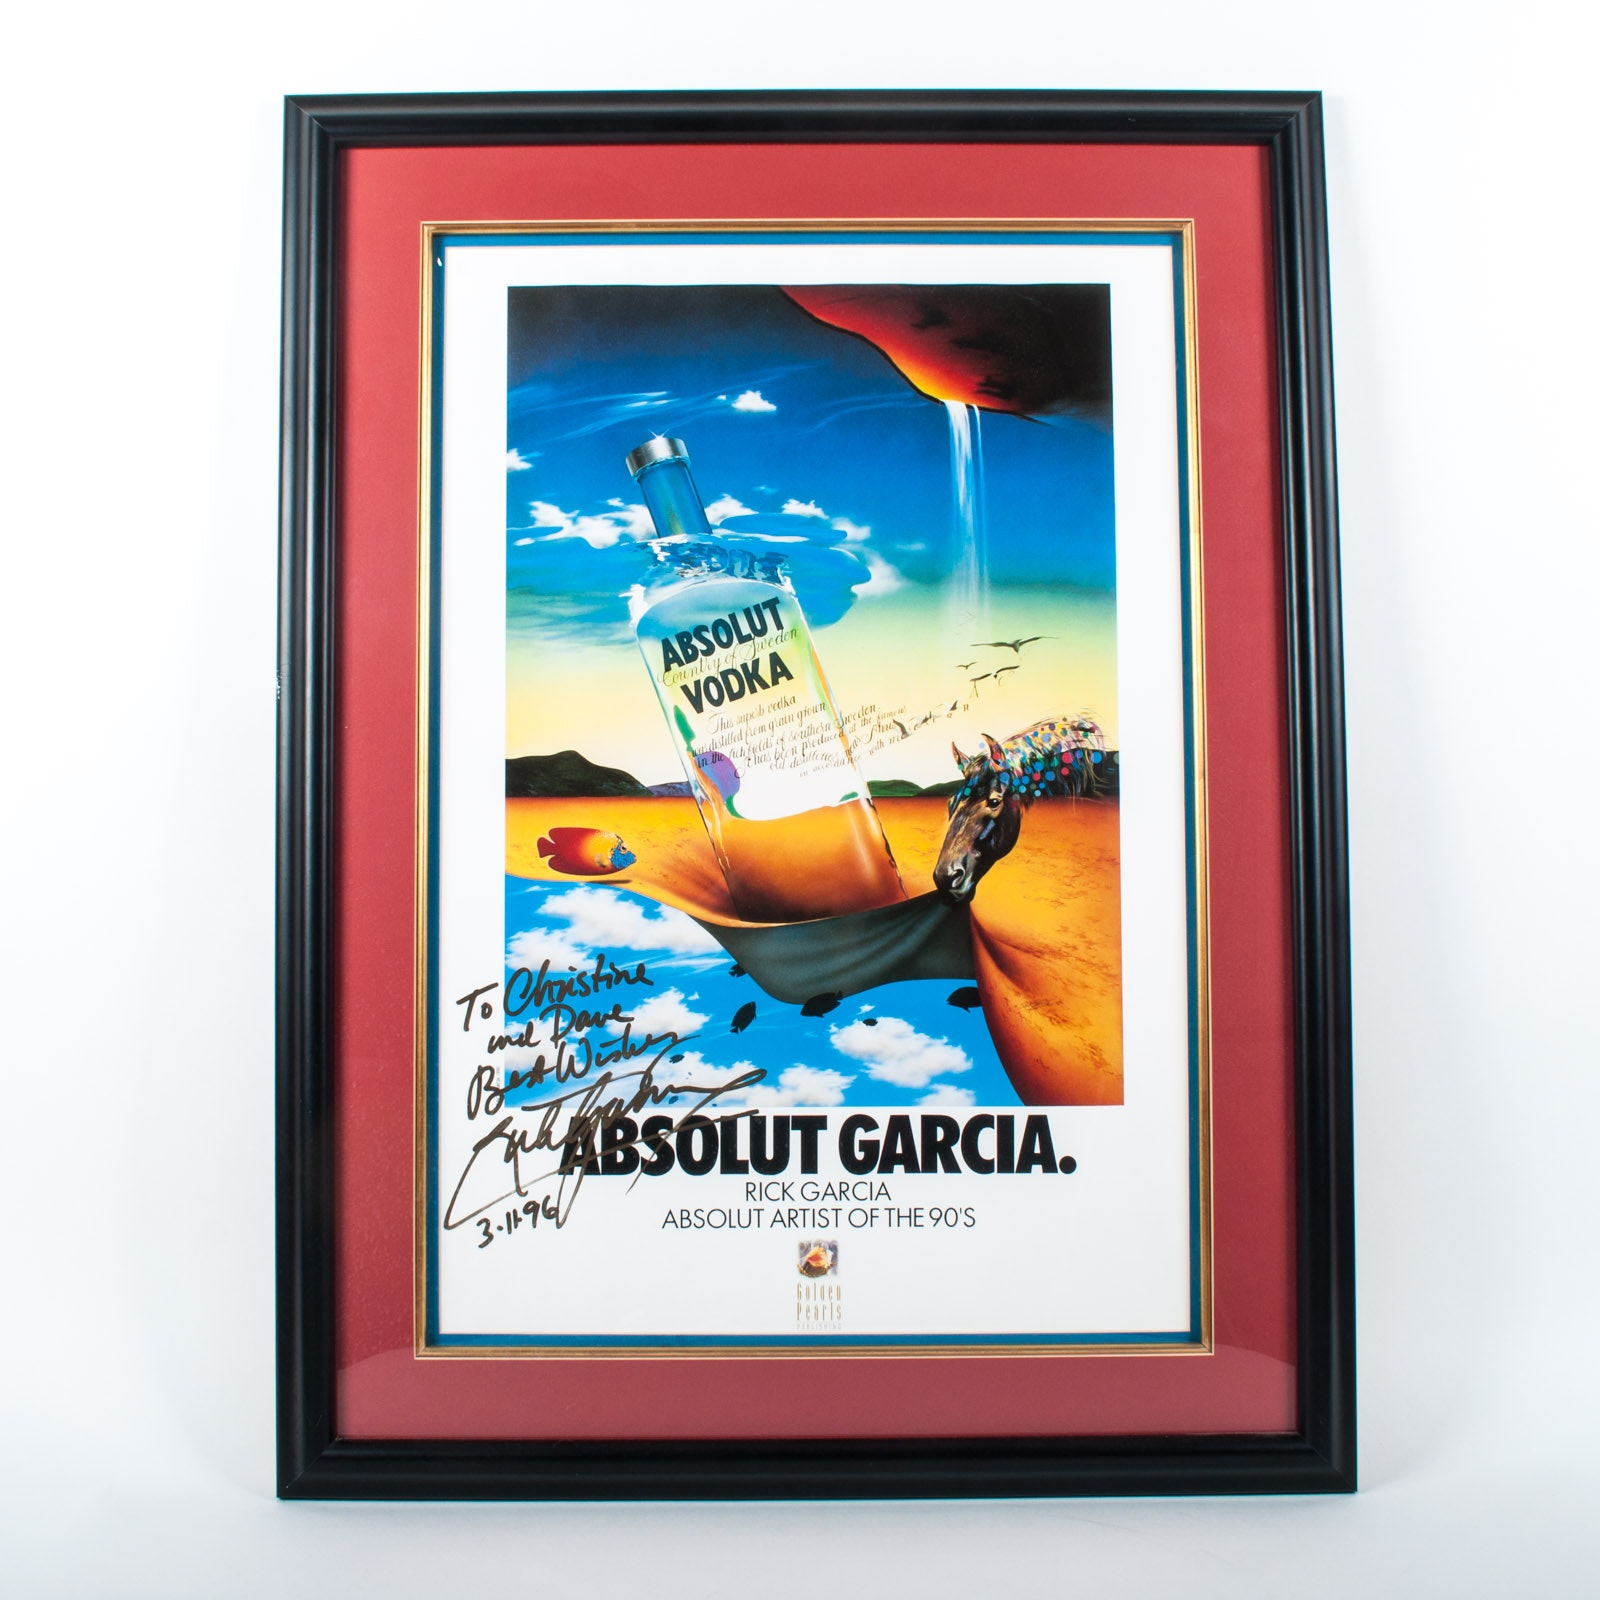 Framed Rick Garcia Signed and Personalized Absolut Poster